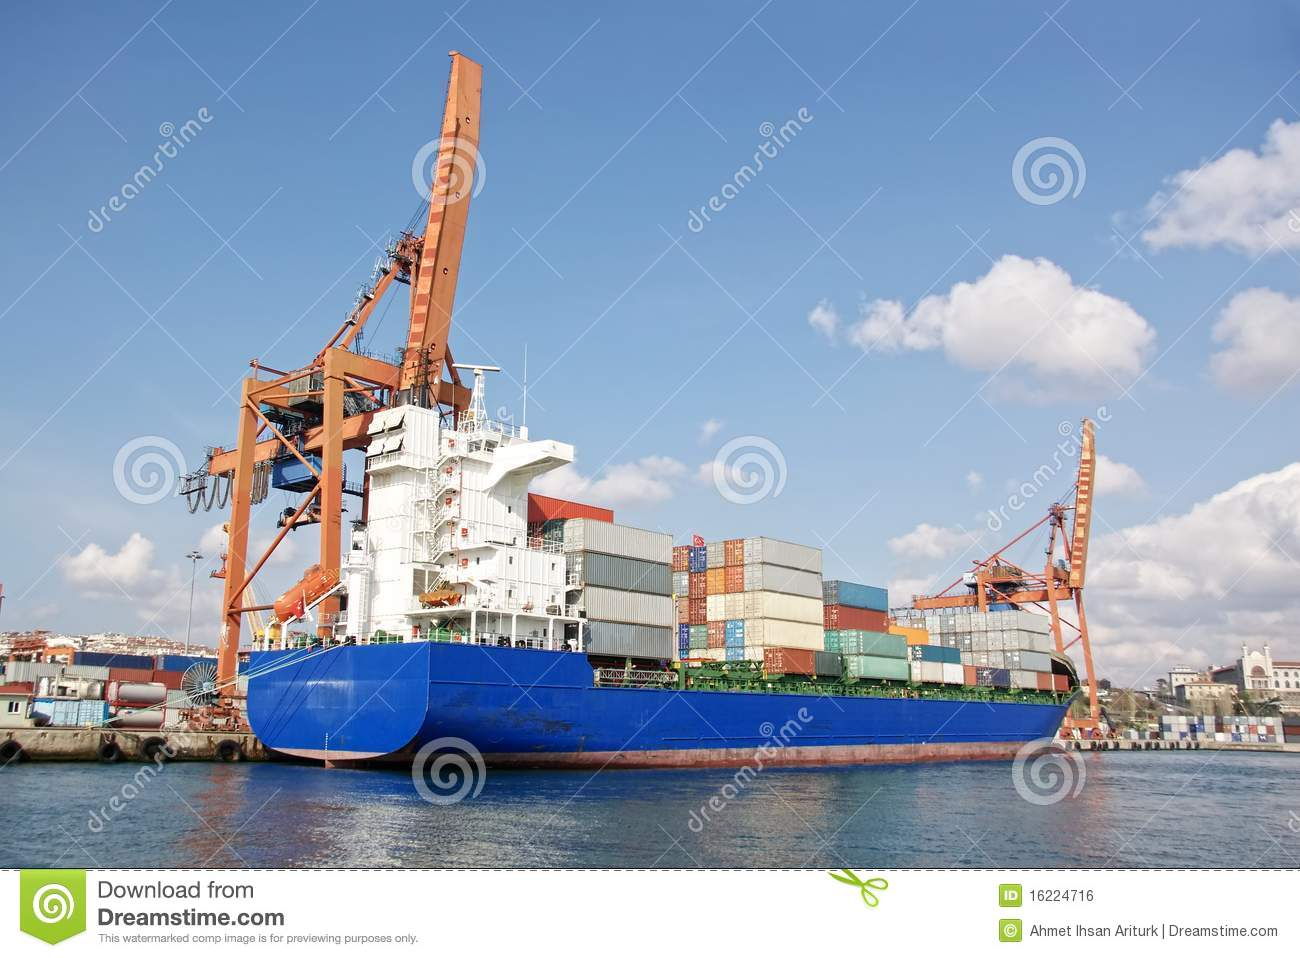 Blue Cargo Ship In Harbor Royalty Free Stock Image - Image ...